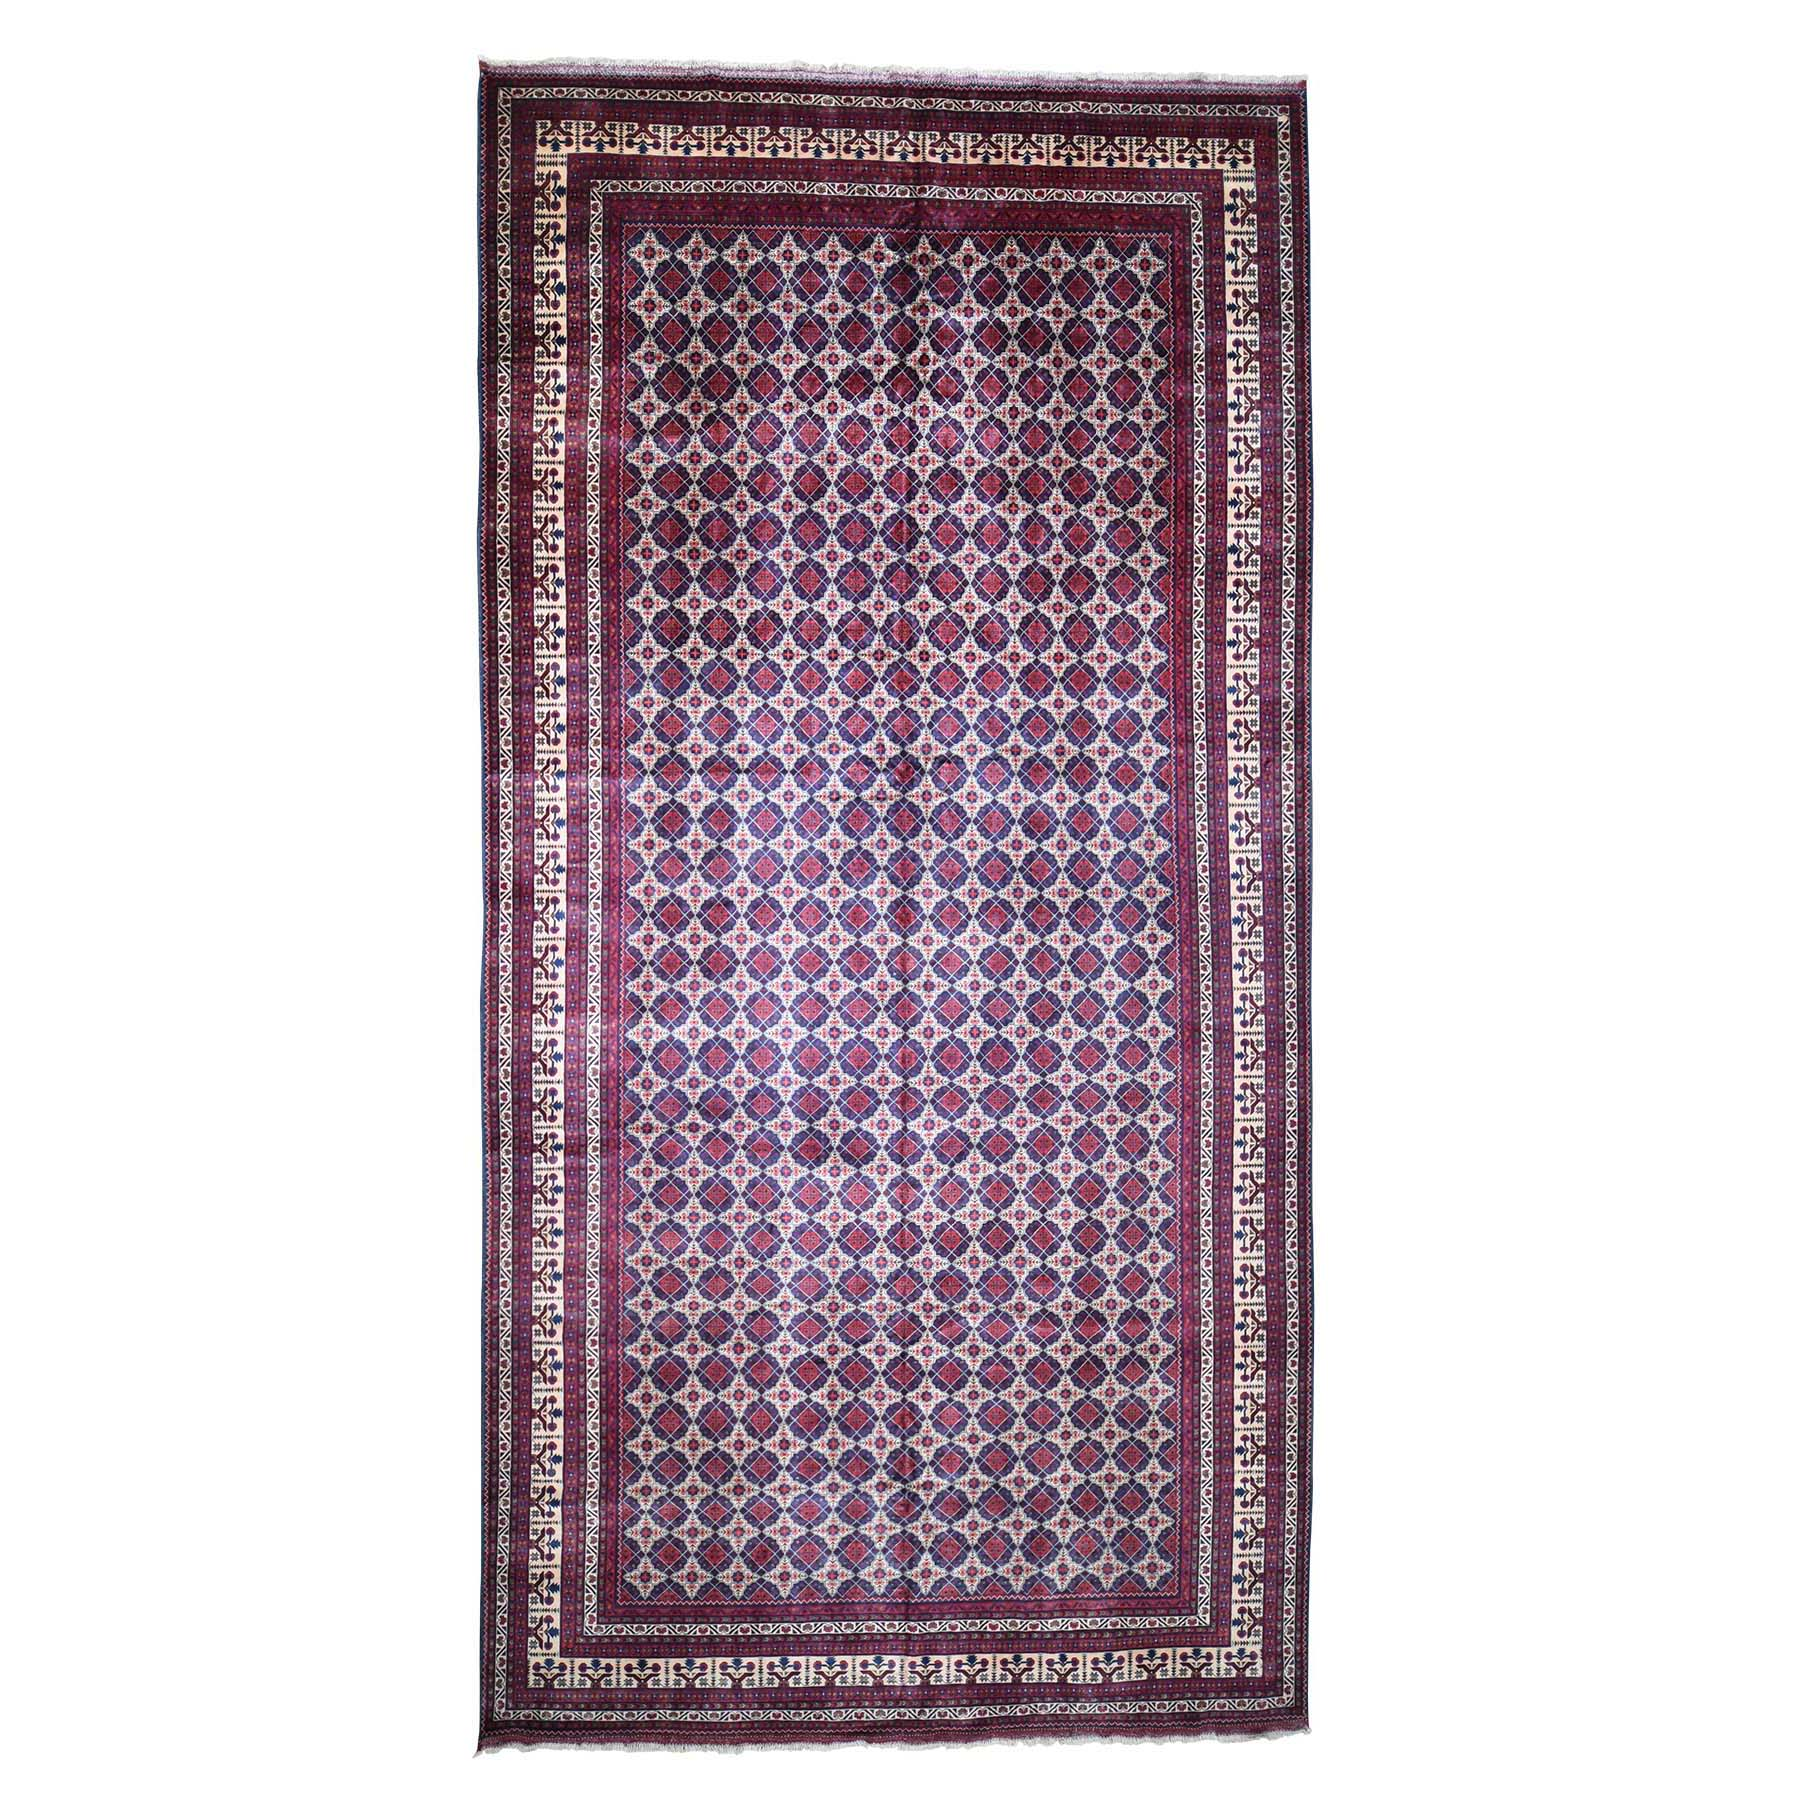 Nomadic And Village Collection Hand Knotted Red Rug No: 0188184